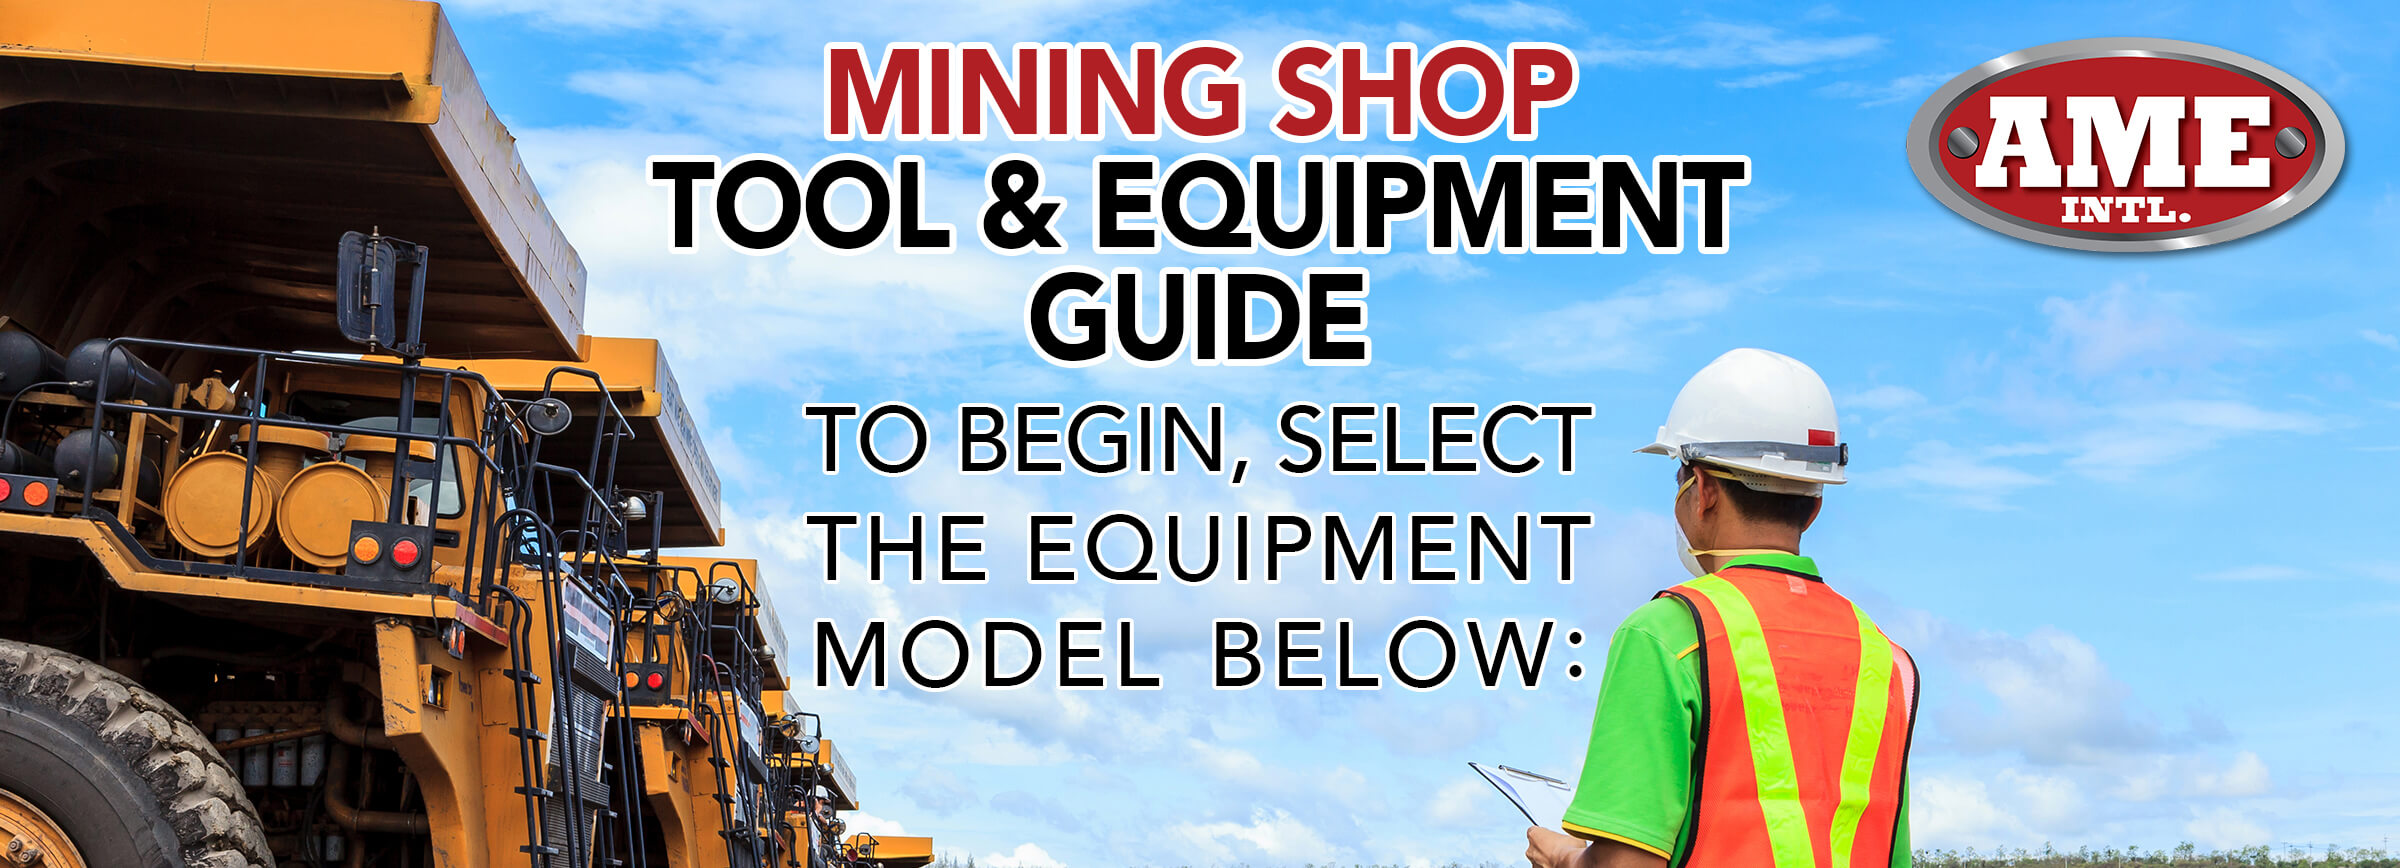 Tool-equipment-application-guide-search-banner-2